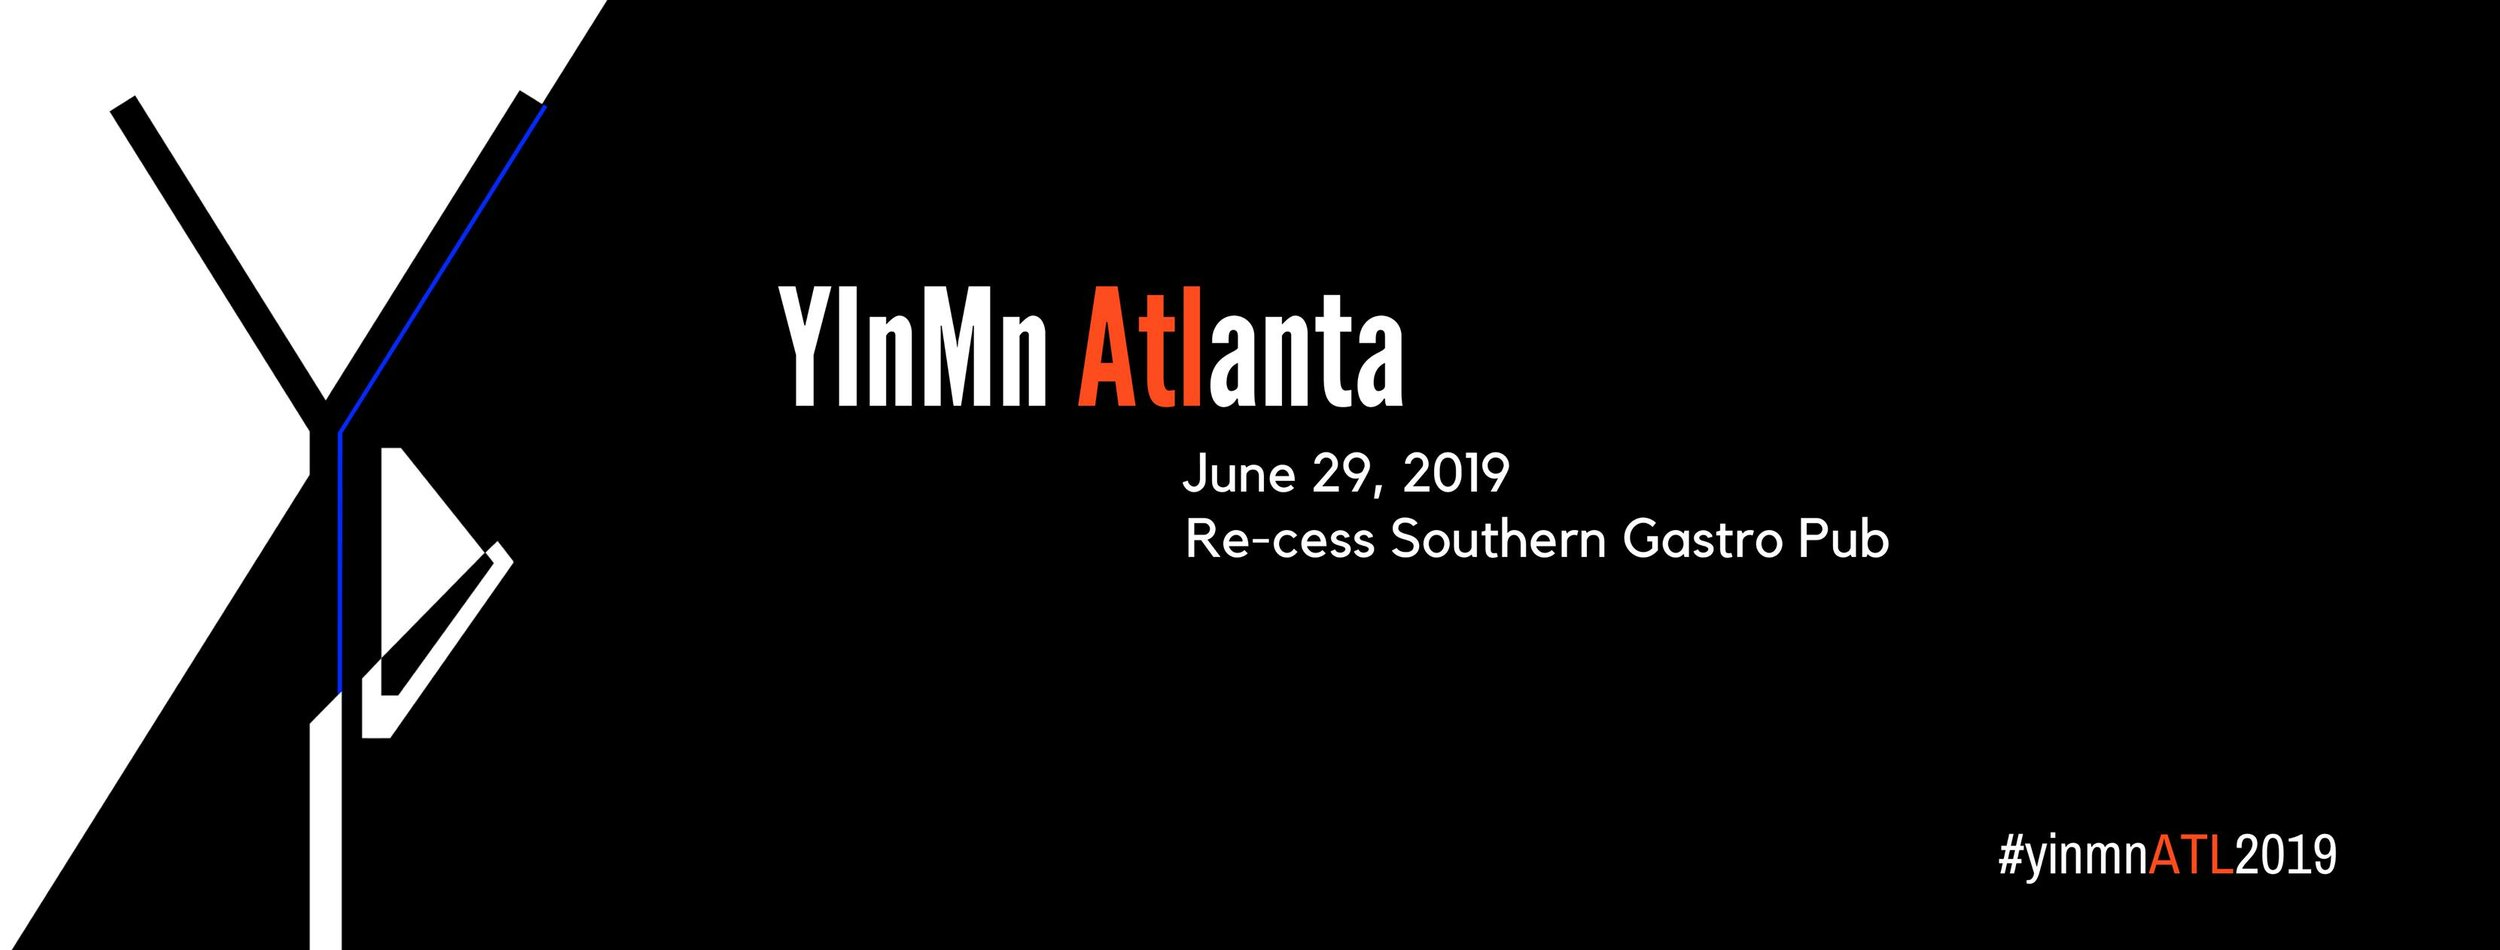 YInMn Atlanta comes to Gainesville via Re-cess Southern Gastro Pub on June 29, 2019